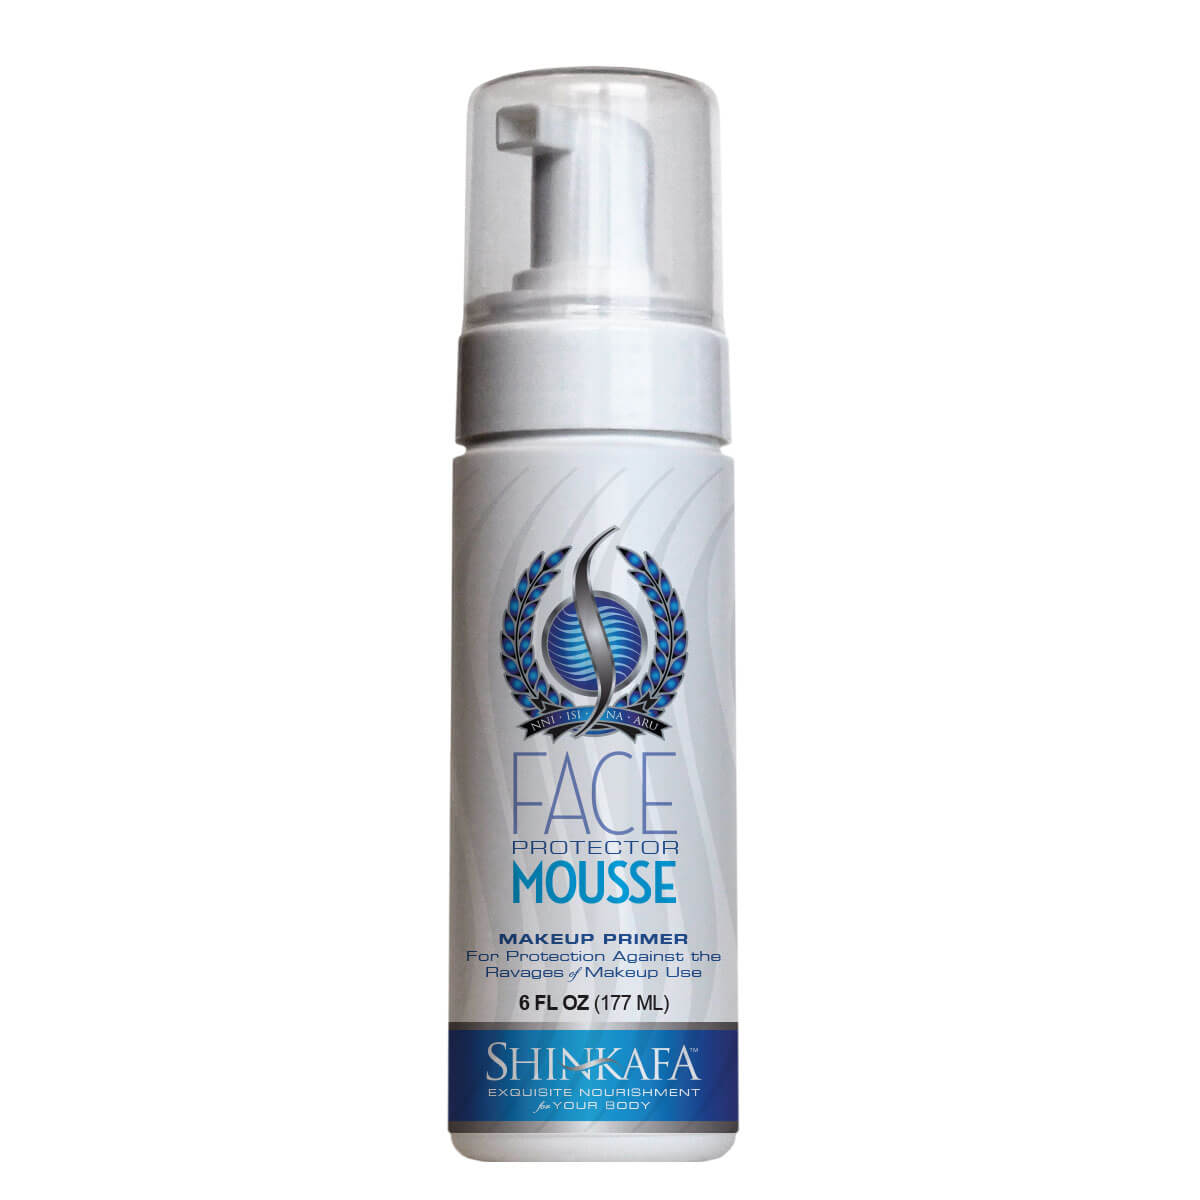 Shinkafa Face Protector Mousse